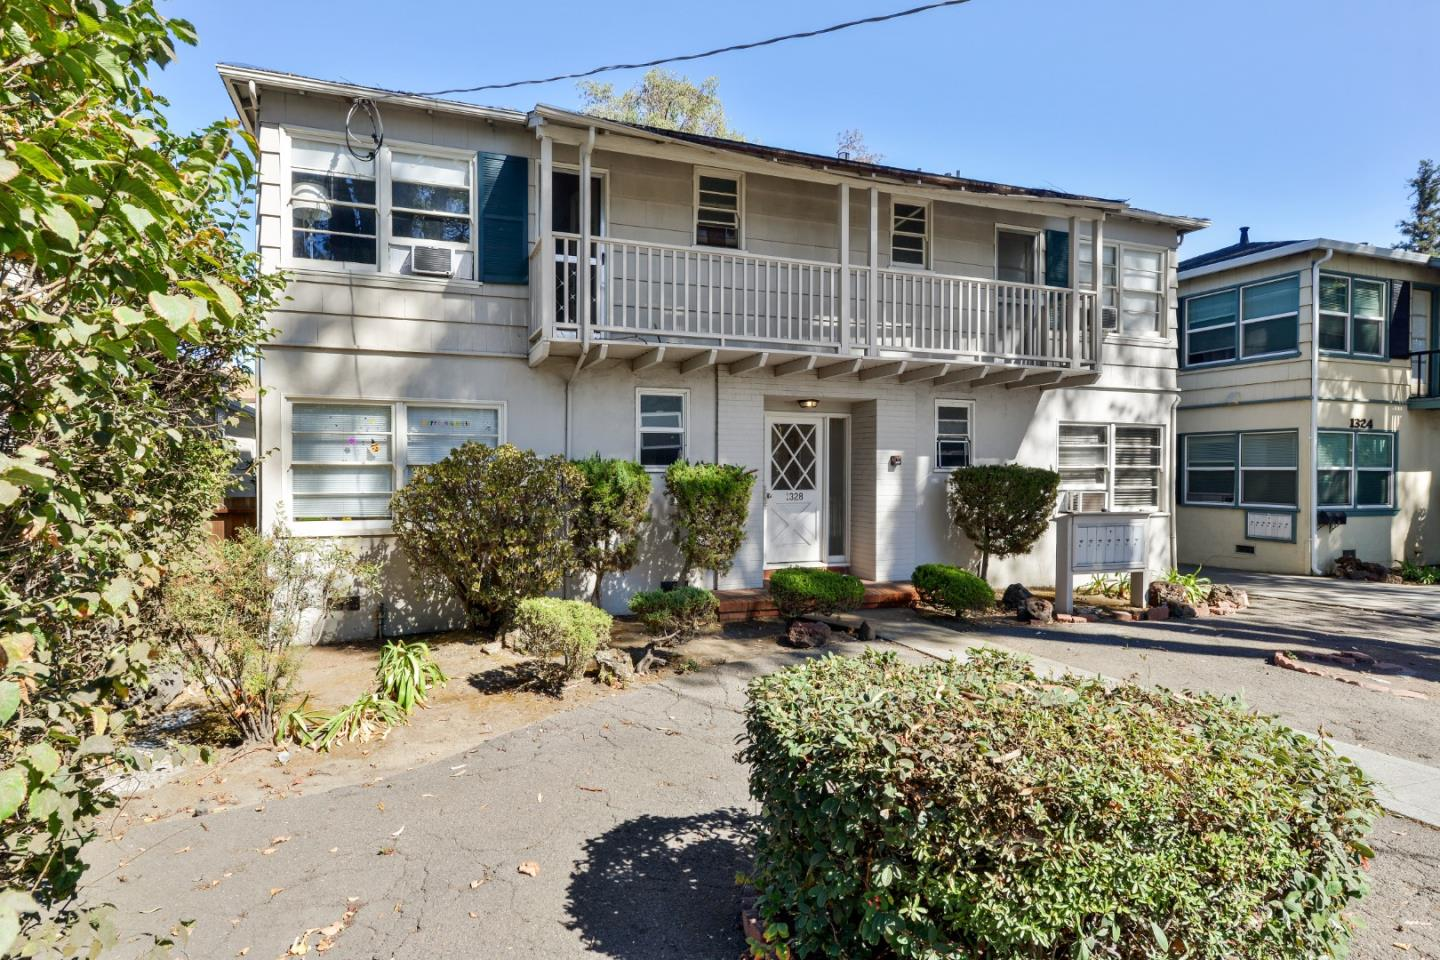 Fantastic opportunity to own an attractive 7 unit apartment building in one of Burlingame's most sought after and prestigious locations! This property features: 7 Studio Units (One Vacant Unit), 7 Parking Stalls, ~5,249 SqFt Building (per Tax Records), ~6,950 SqFt Parcel (per Tax Records), located within walking distance of Broadway commercial/retail district, convenient access to US 101, I-280, SamTrans, CalTrain & more, Built in 1947, all tenants are currently month-to-month with one vacant apartment and more!